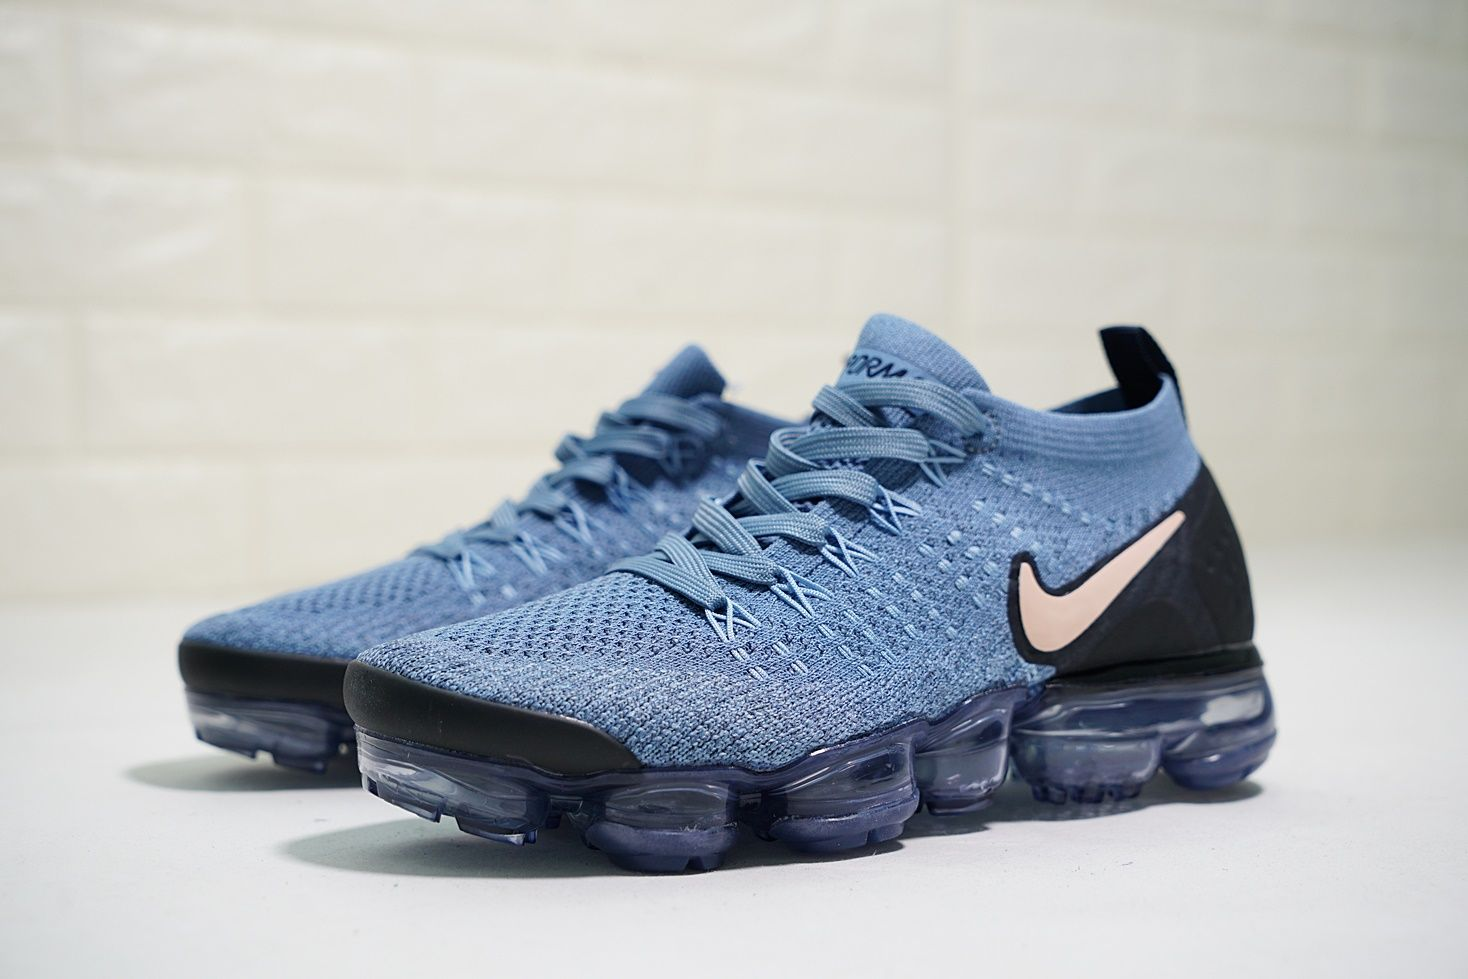 0397659195b97 NIKE AIR VAPORMAX FLYKNIT 2 LIGHT BLUE NUDE POWDER 942843 401 ...